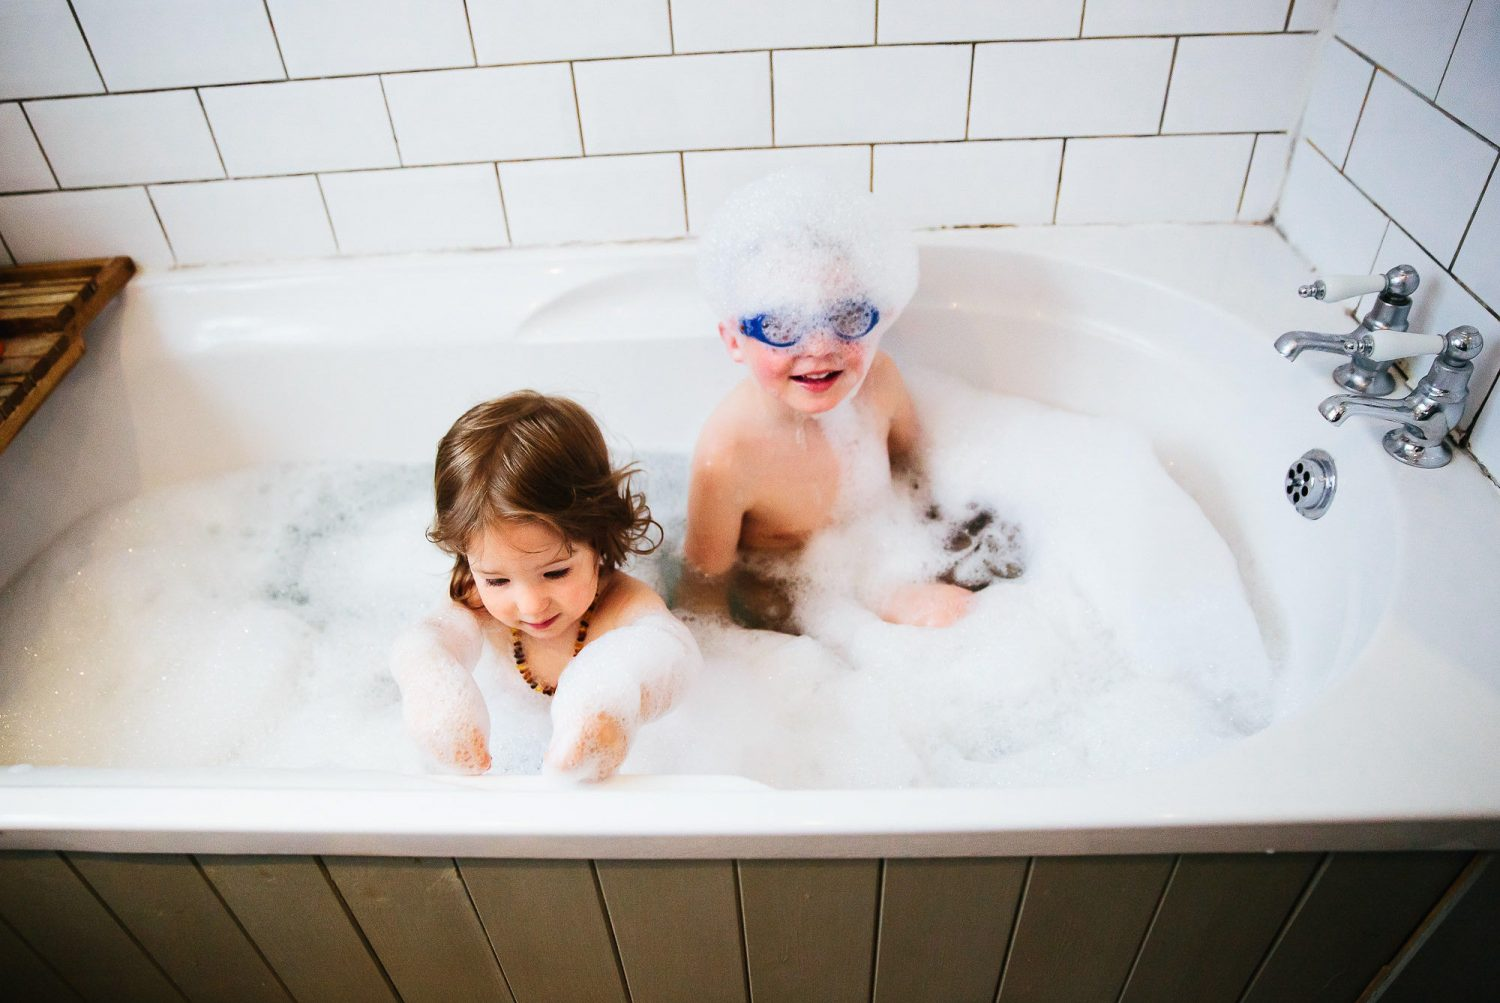 day in the life photography children playing in the bath with goggles on